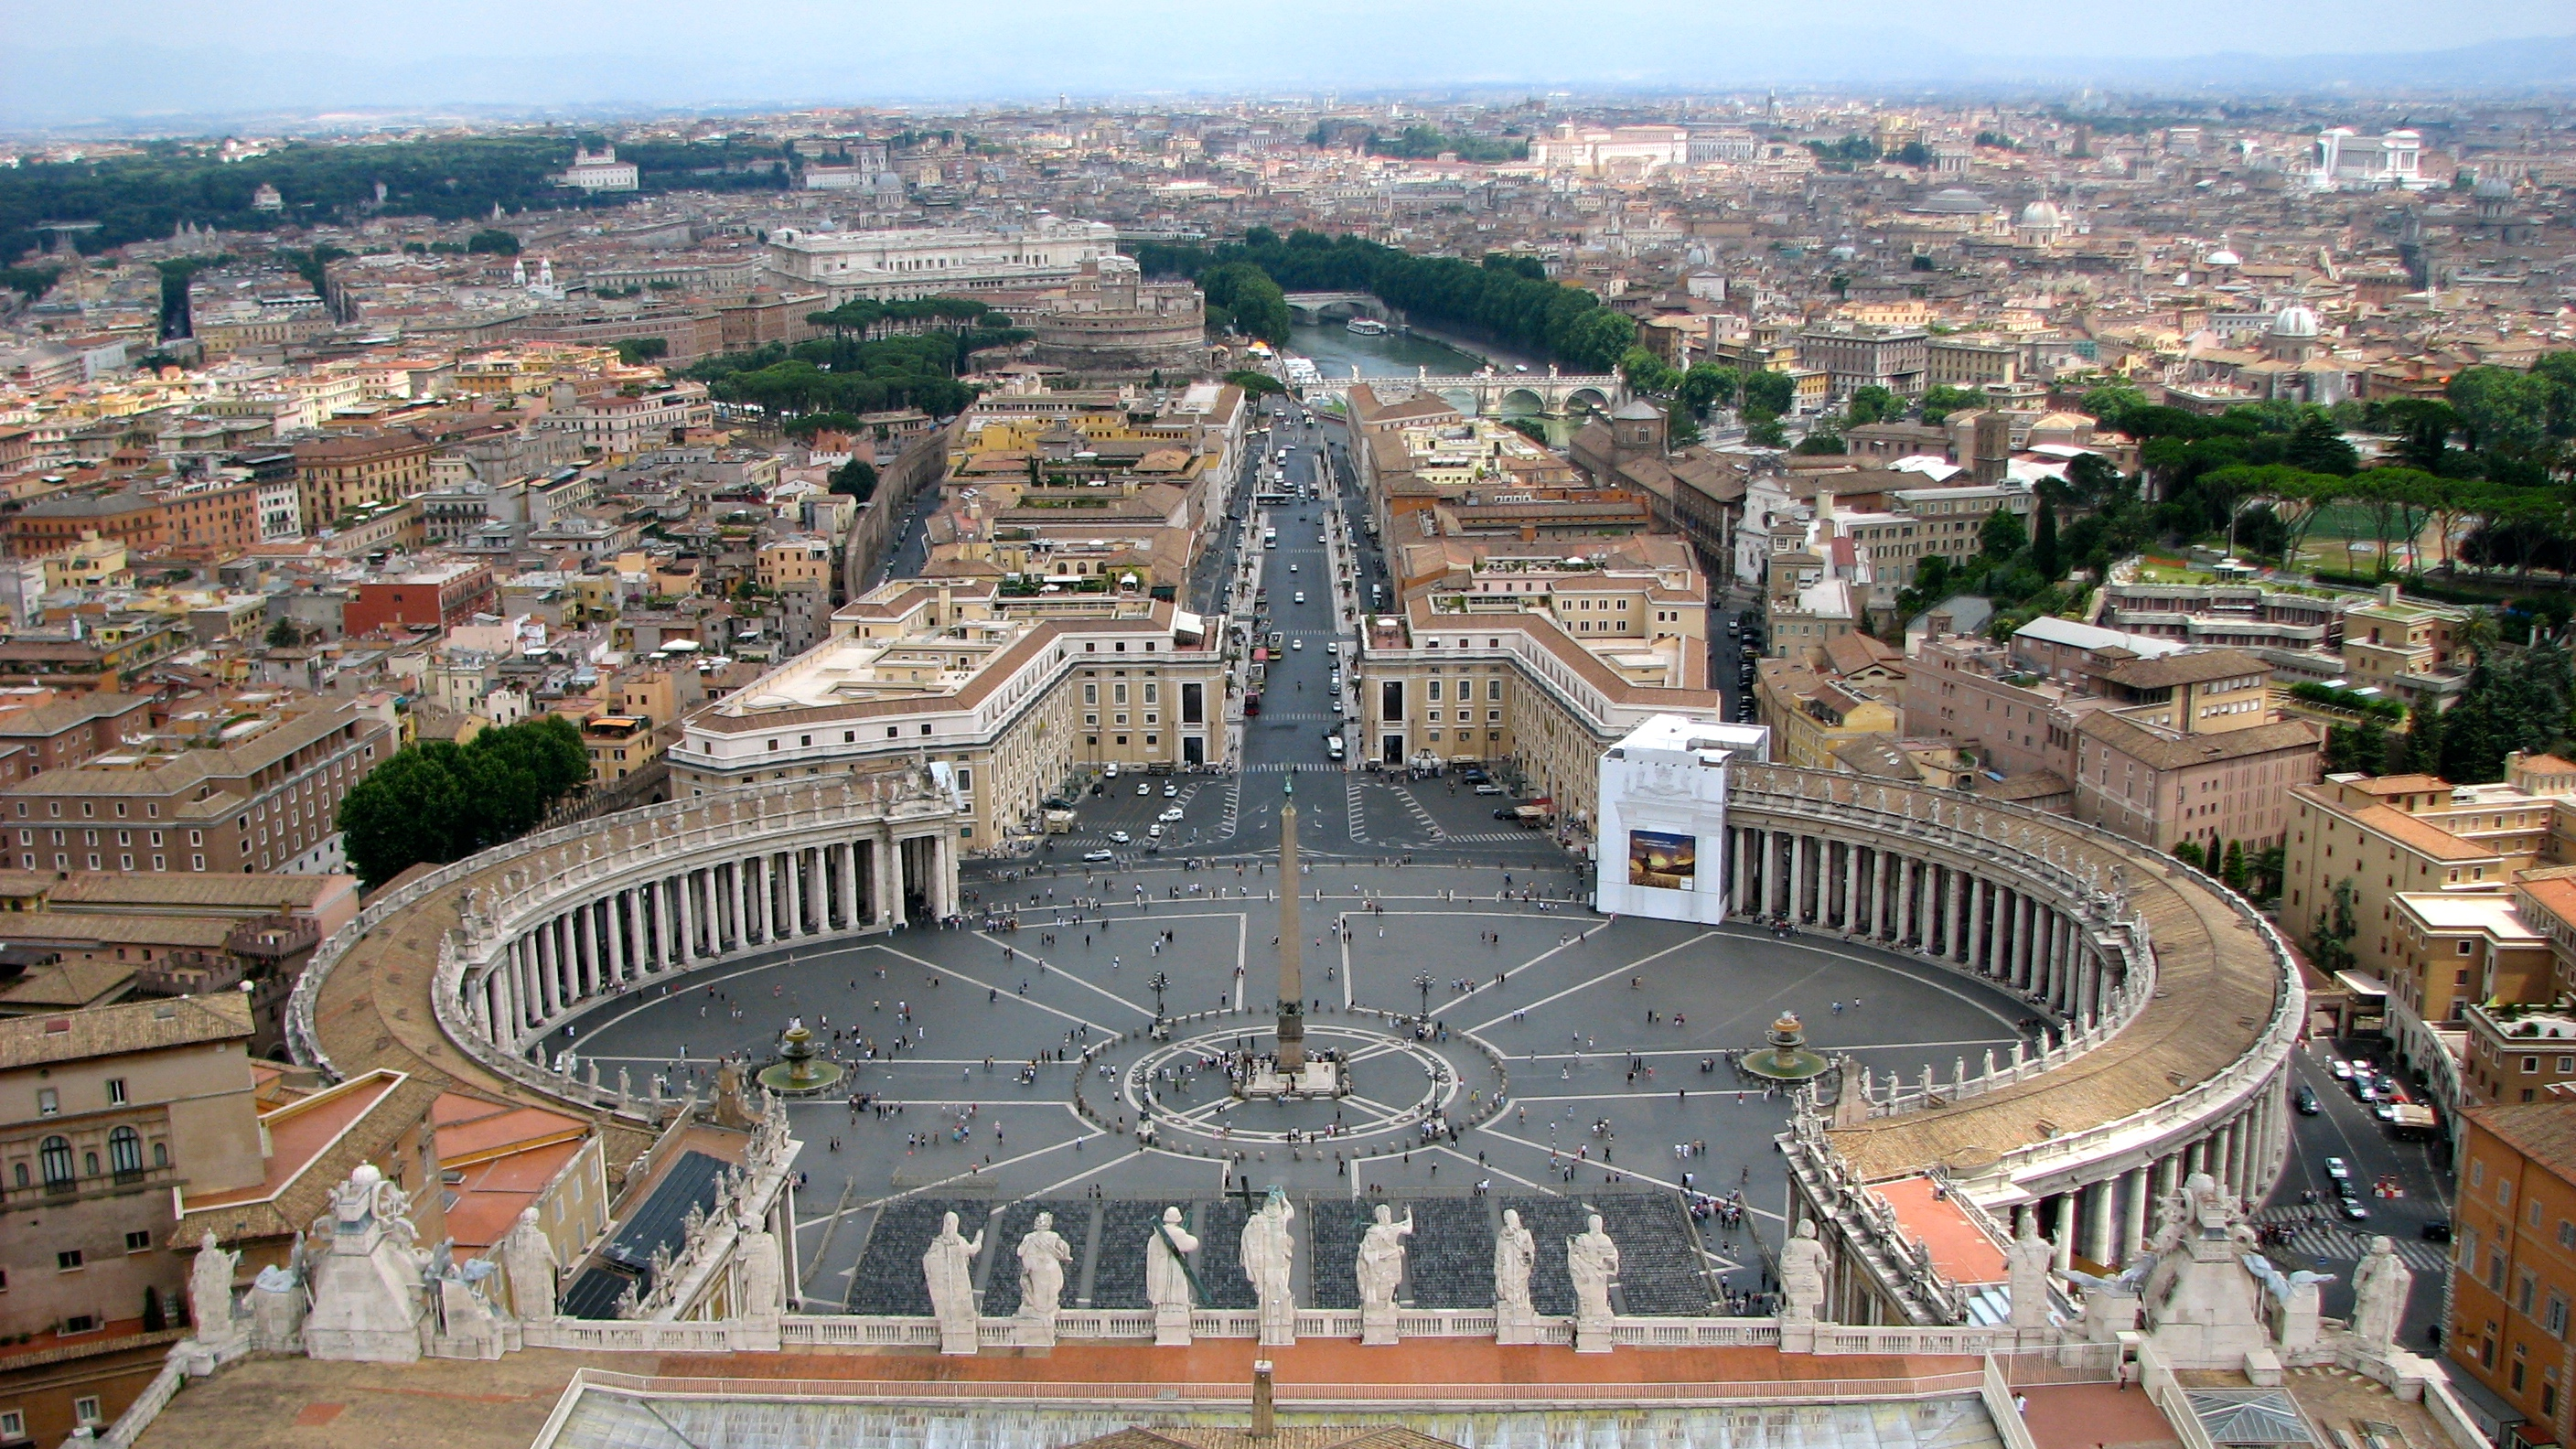 St. Peter's Square Rome Italy